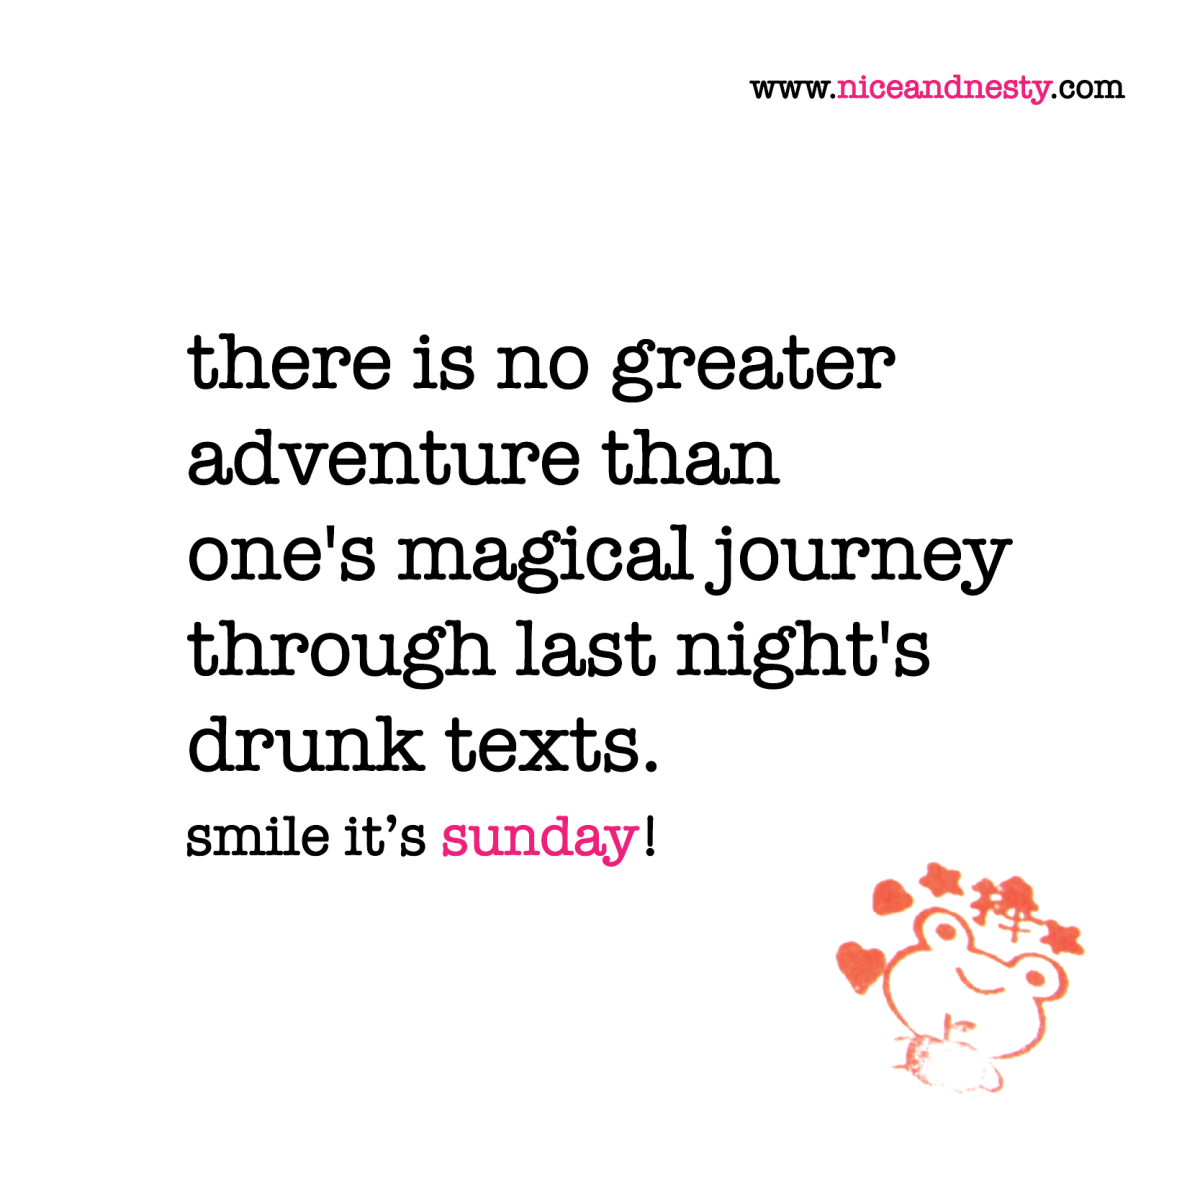 There Is No Greater Adventure Than One's Magical Journey